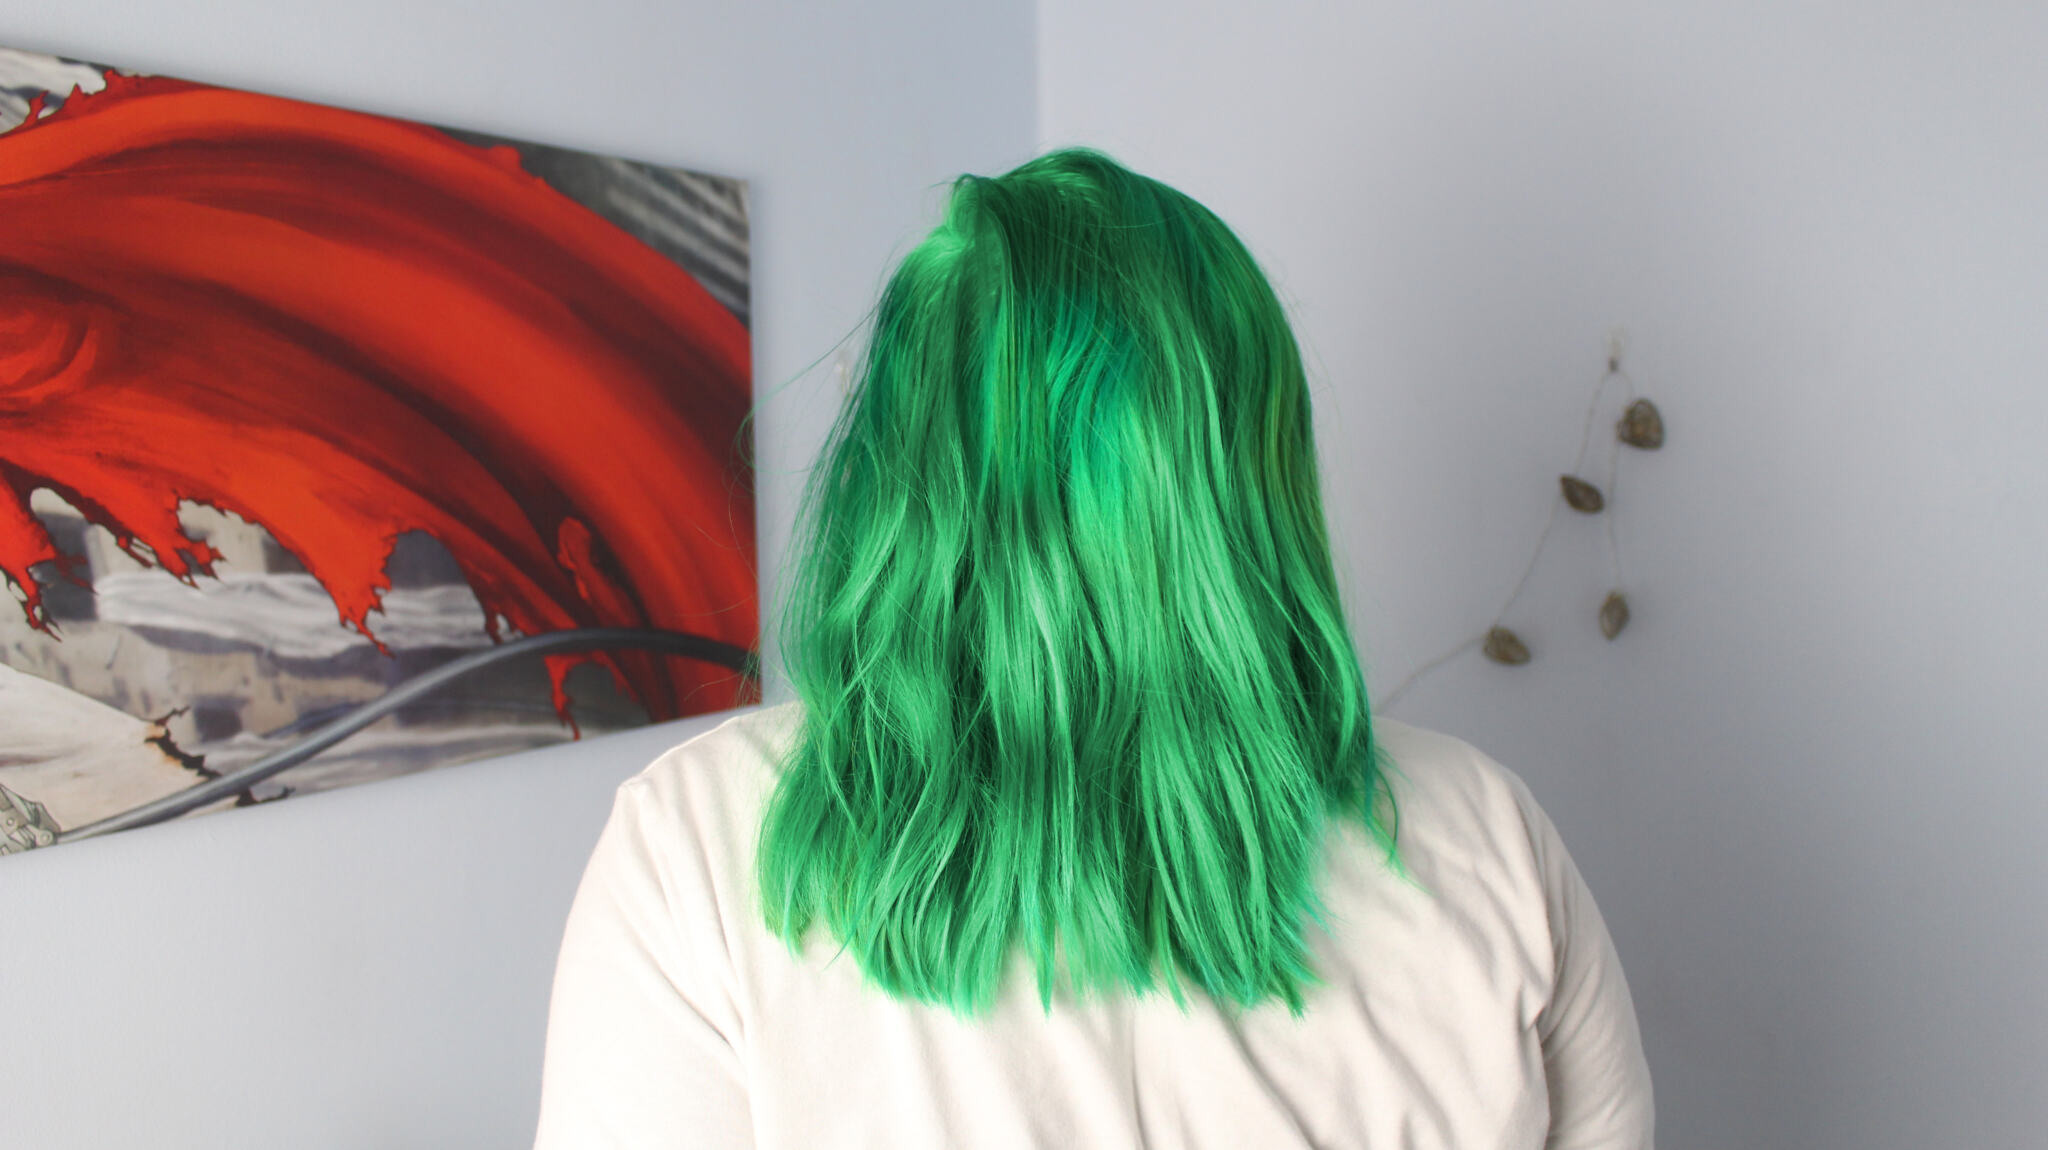 La Riche Directions Apple Green Hair Dye on Holly Stockport